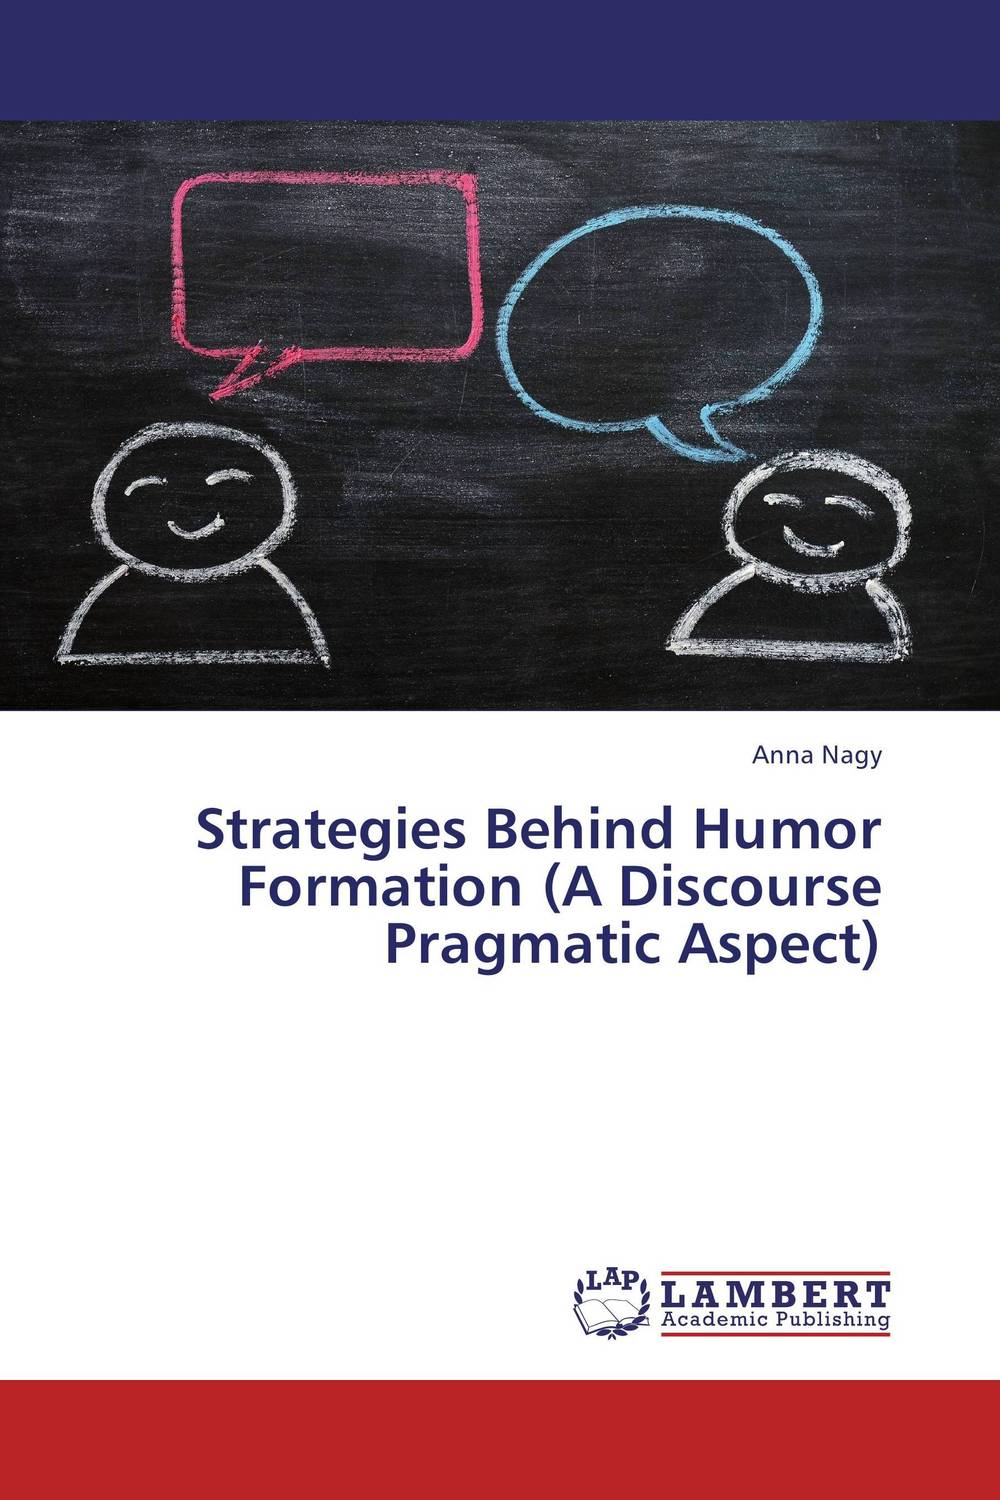 Strategies Behind Humor Formation (A Discourse Pragmatic Aspect) donald smith j bond math the theory behind the formulas